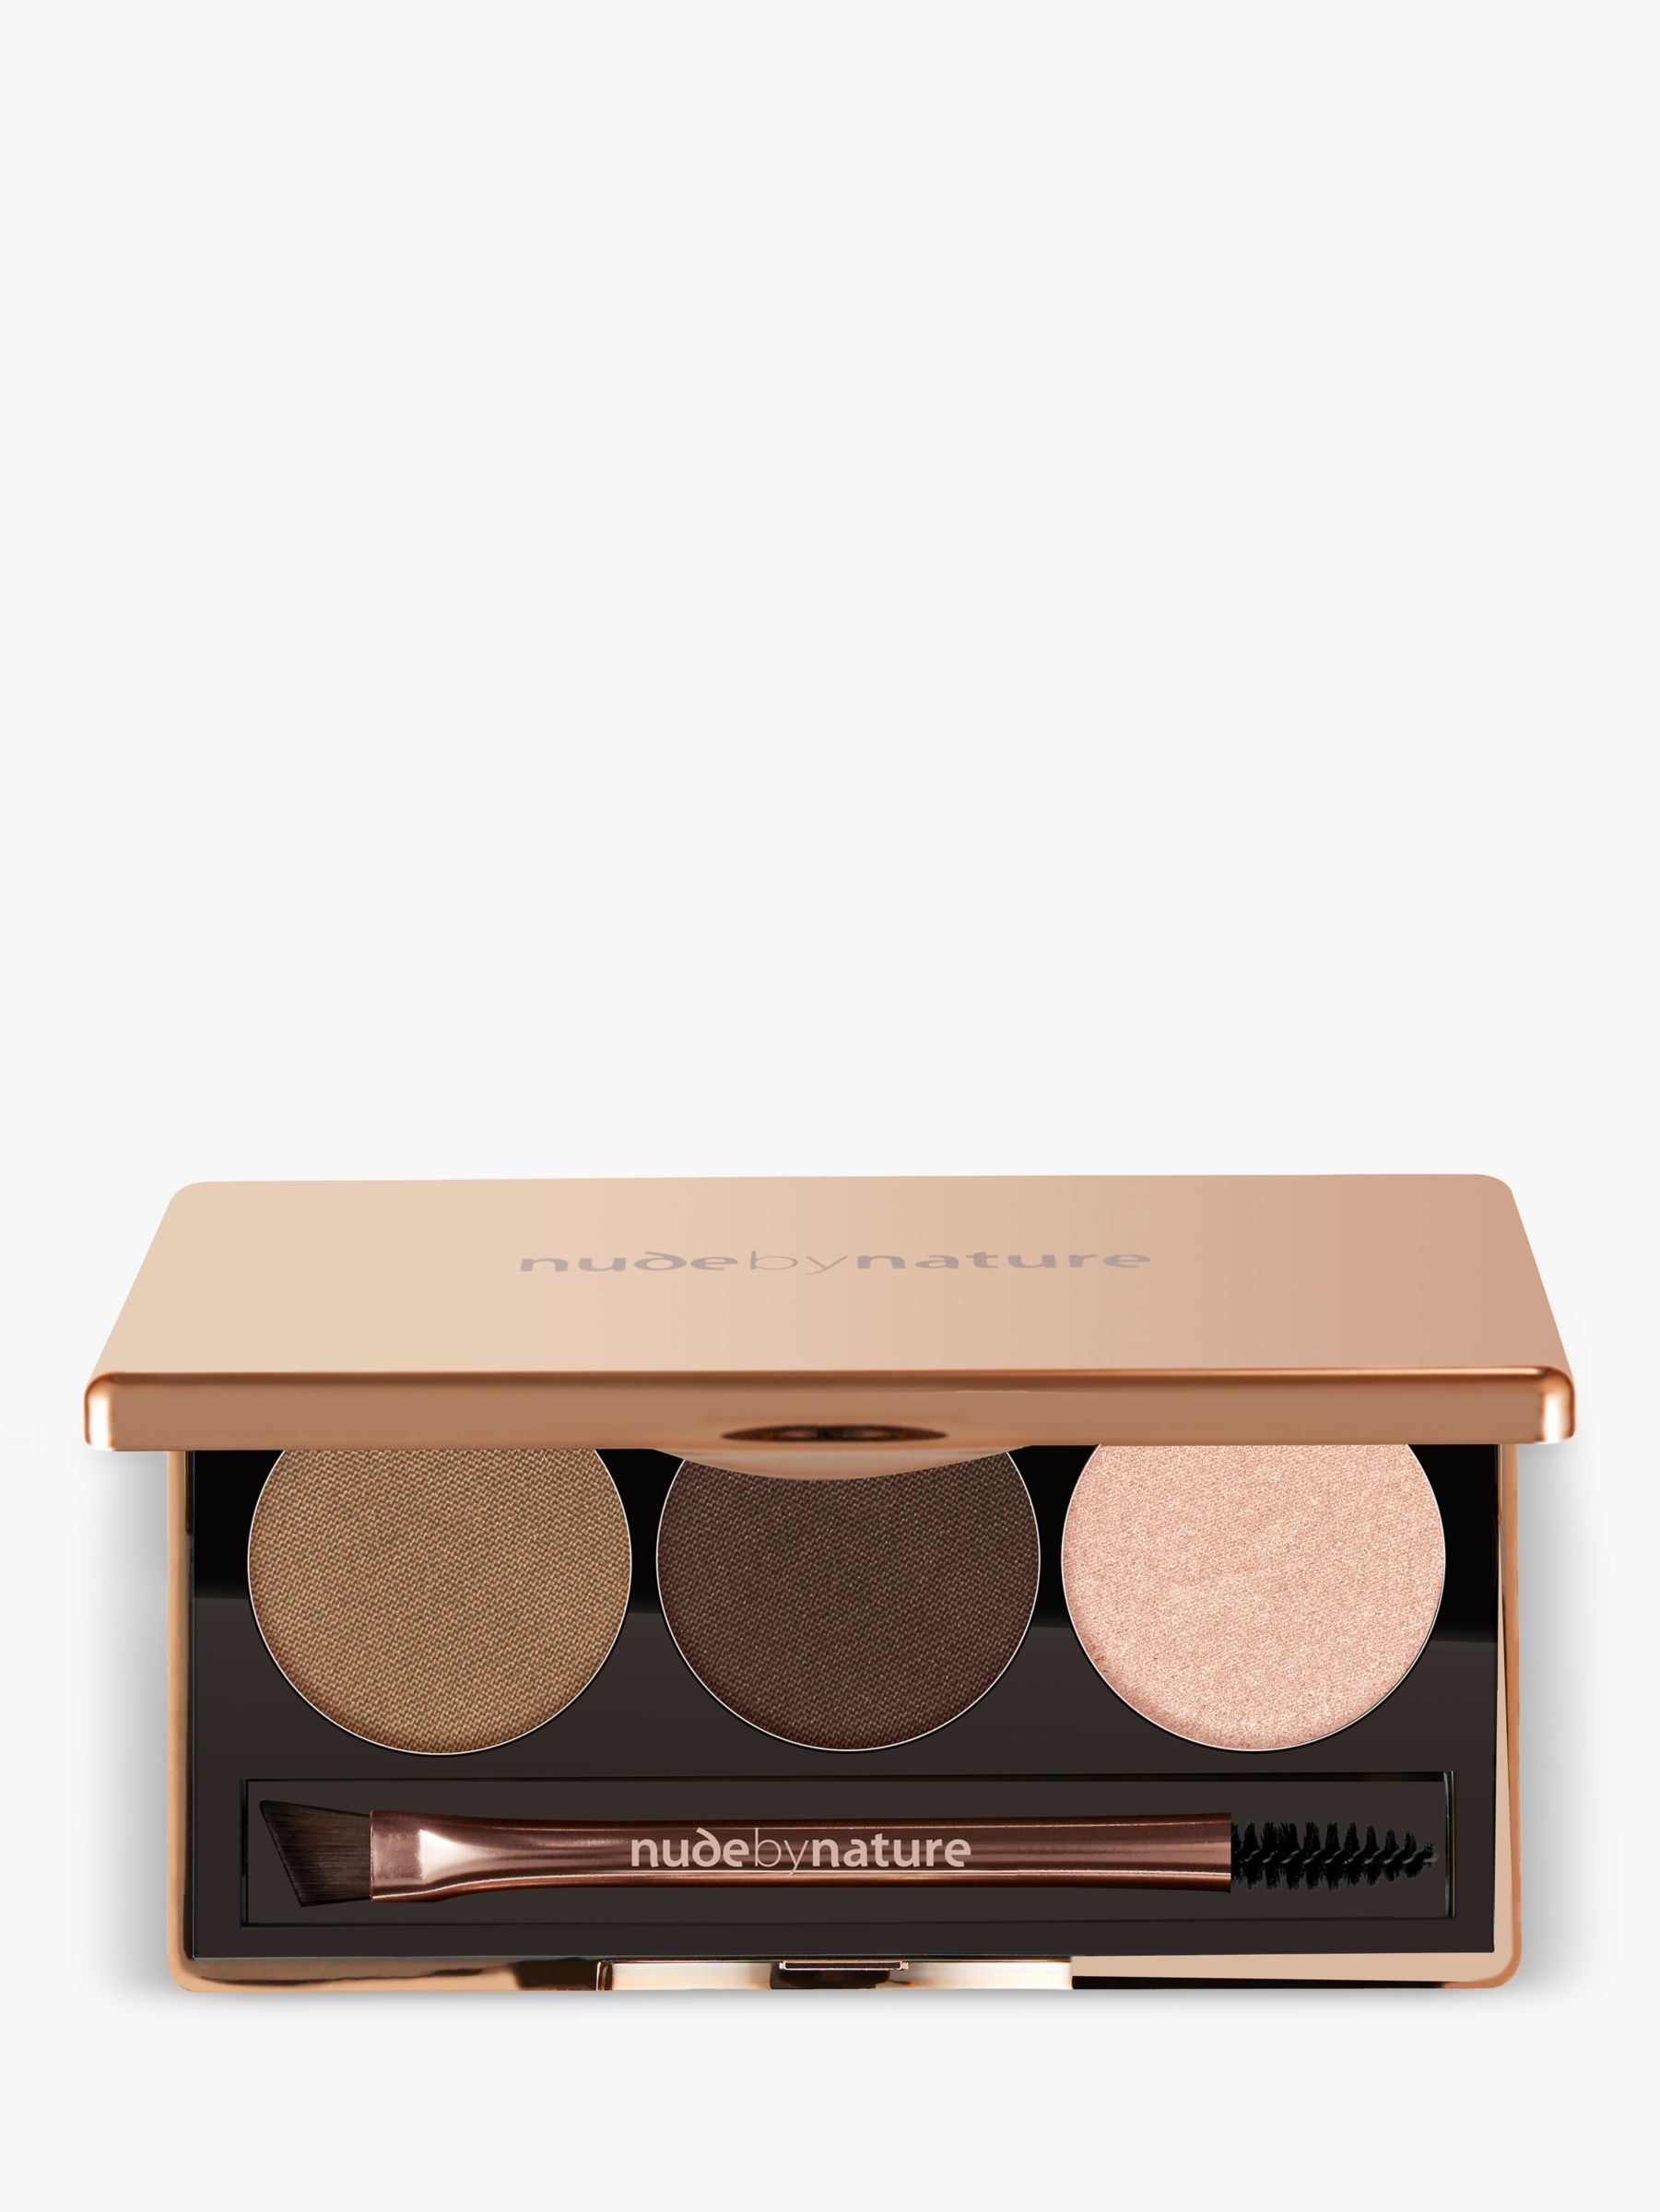 Nude by Nature Nude by Nature Natural Definition Brow Palette